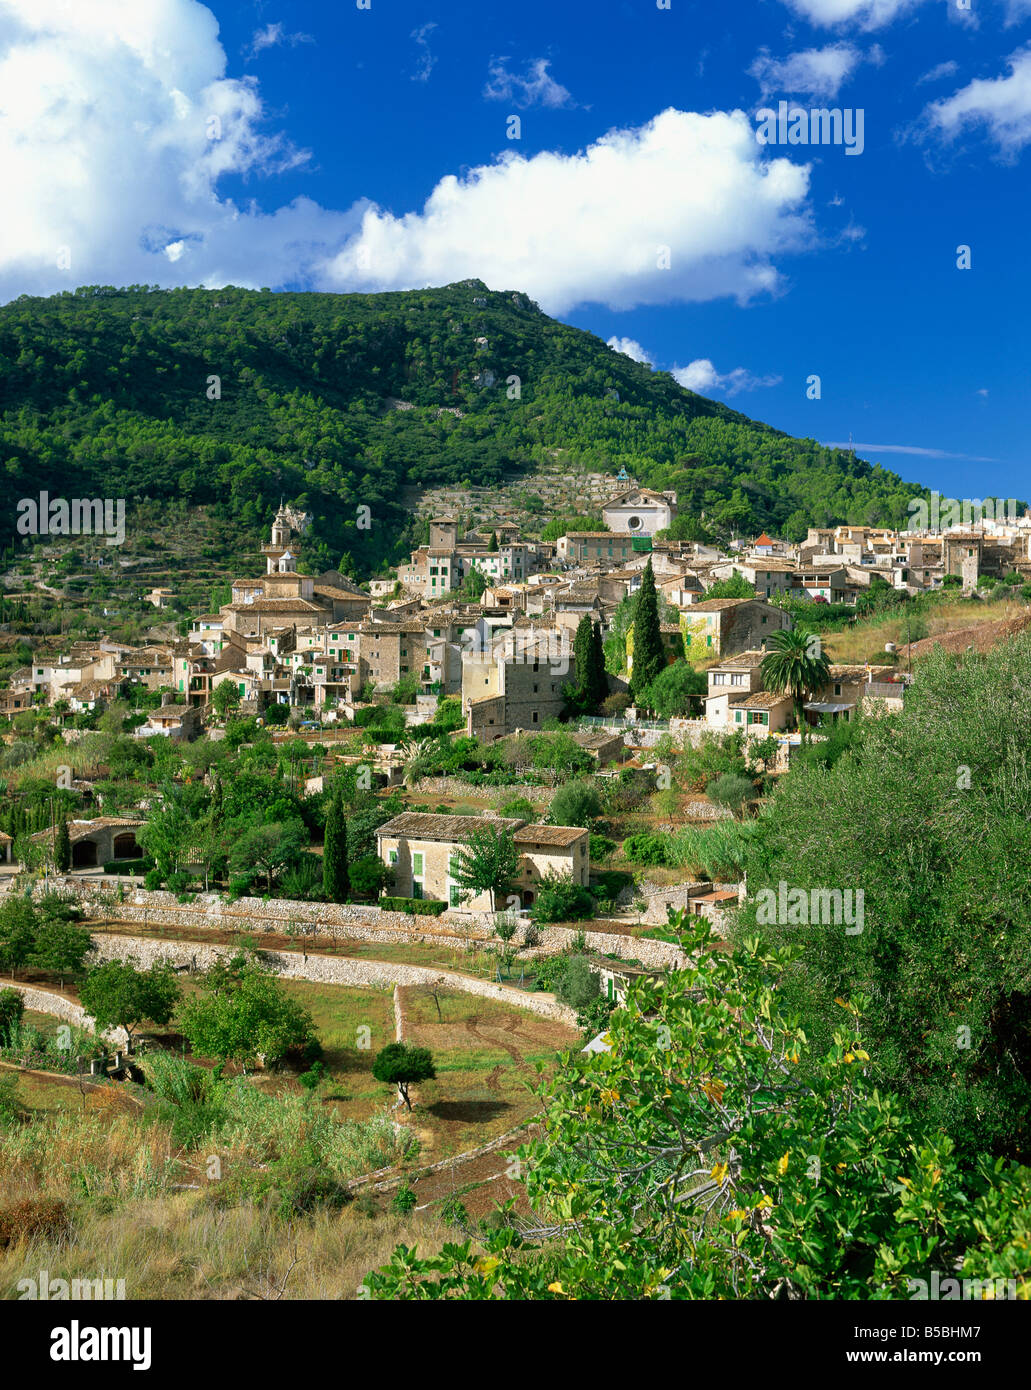 Houses and churches in the hill town of Valldemosa on Majorca Balearic Islands Spain Europe Stock Photo